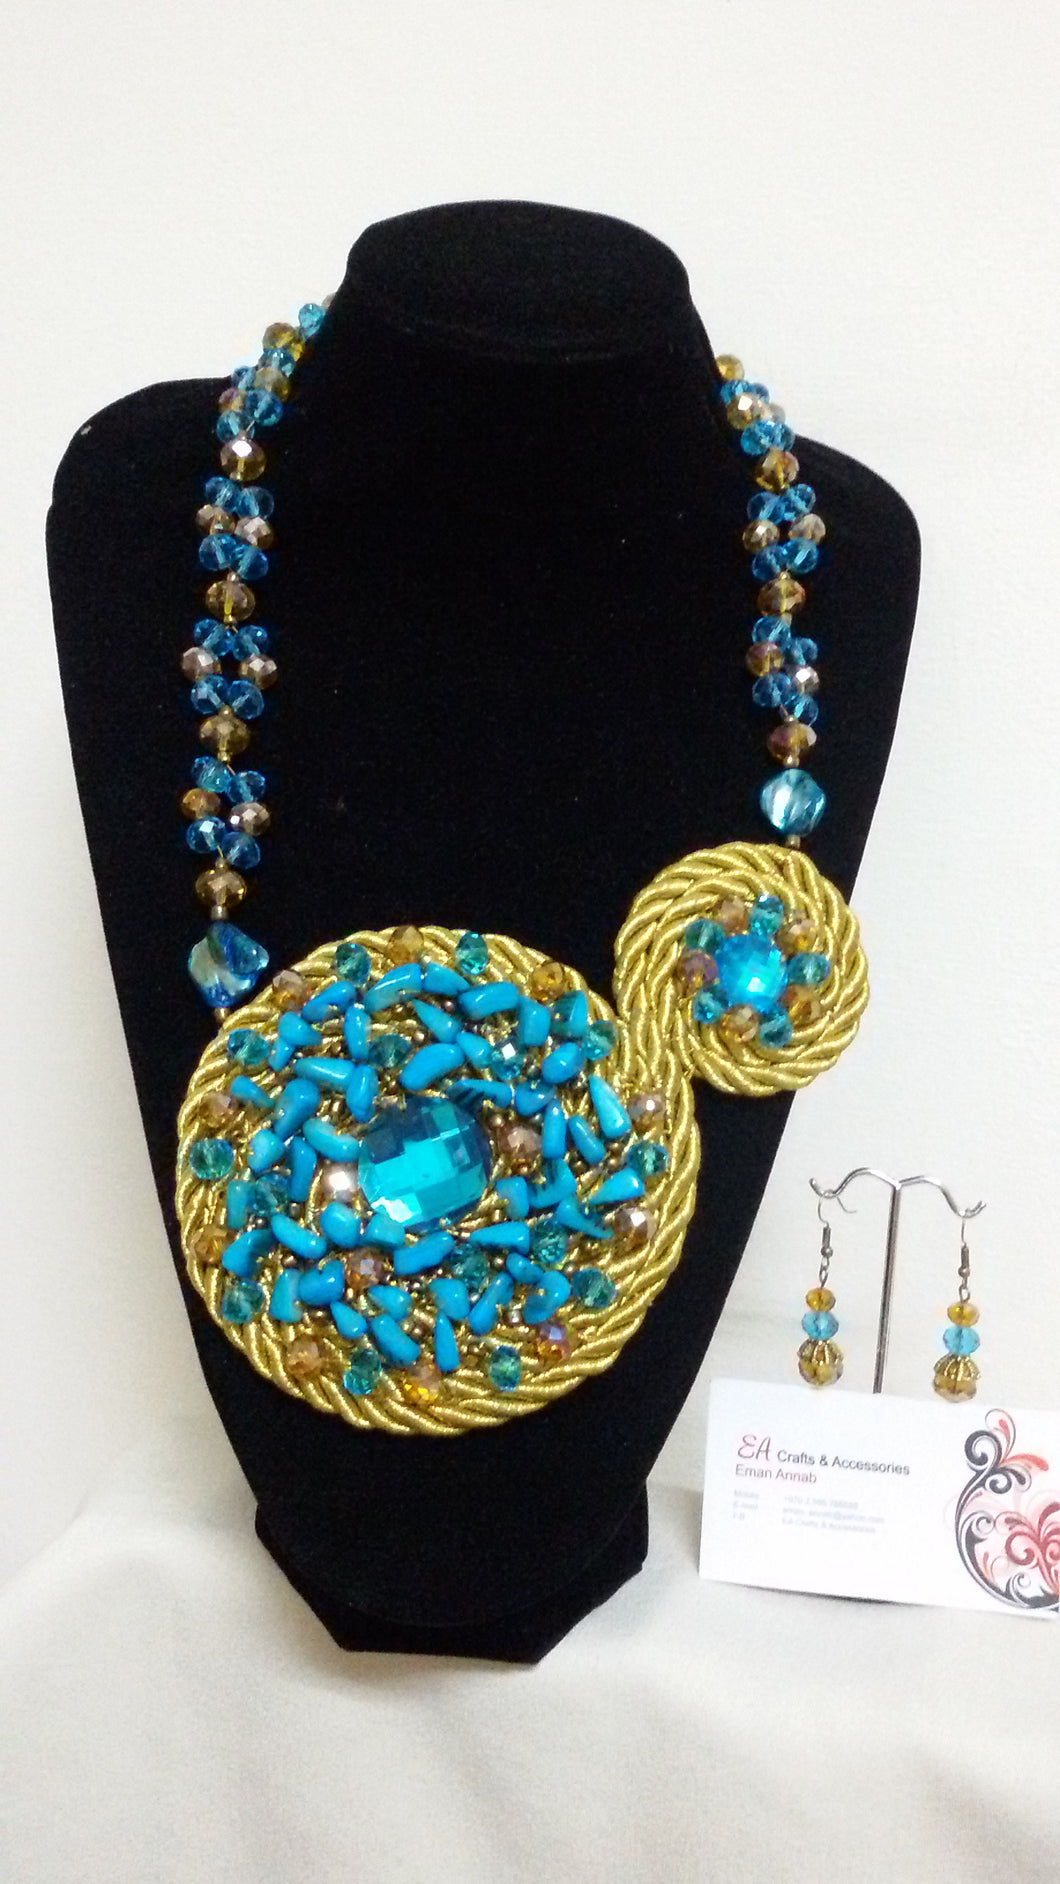 Handmade turquoise necklace and earrings - Falastini Brand